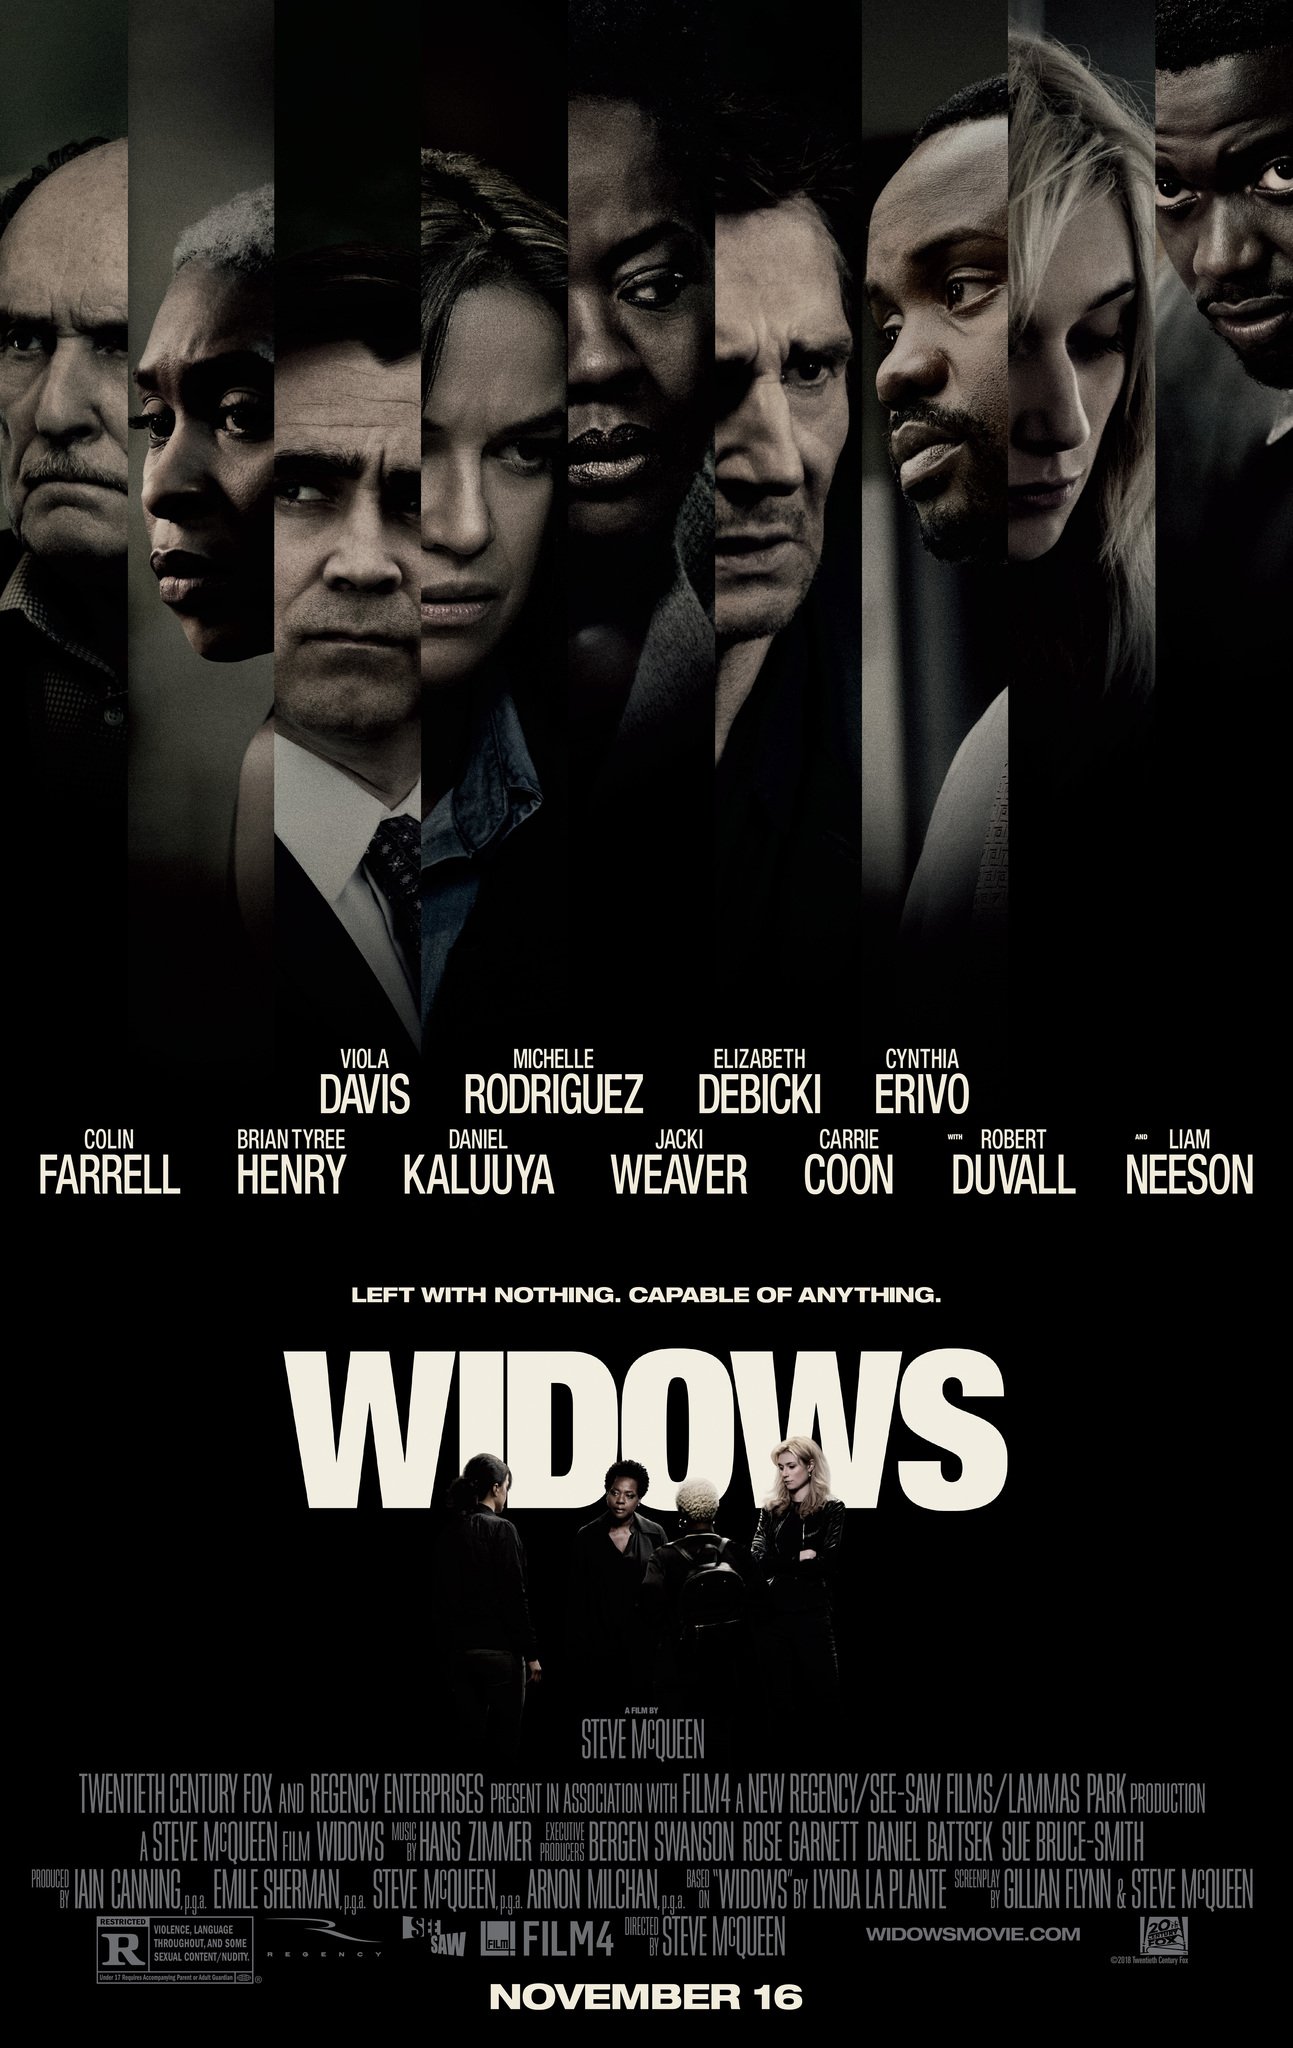 The Wife And The Widow Synopsis